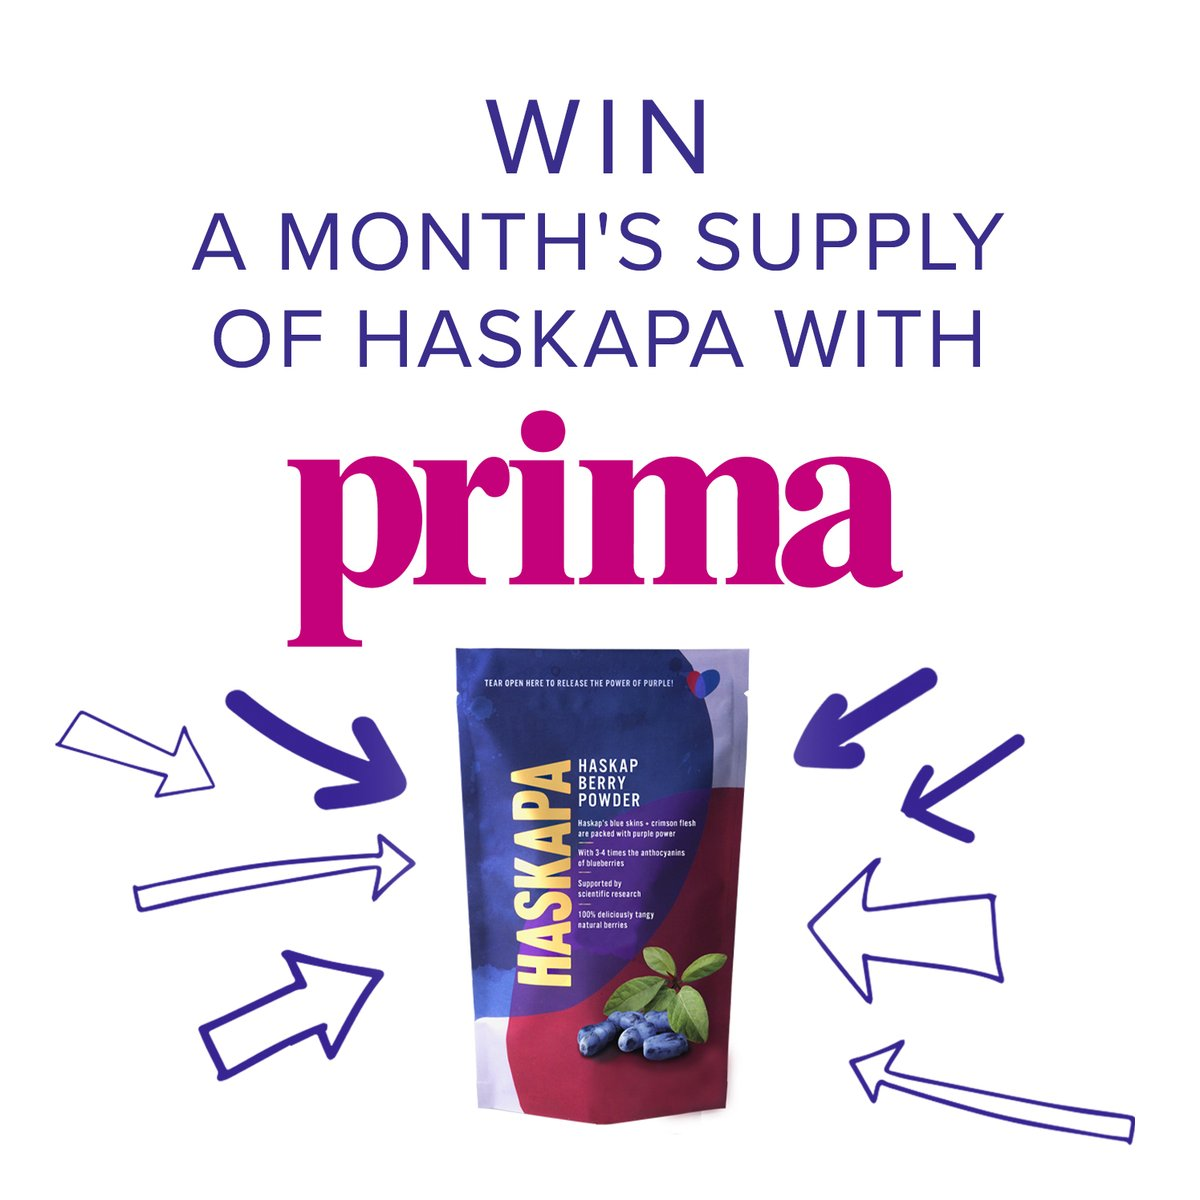 Here's another chance to win a months supply of Haskapa with @PrimaMag 💜 https://t.co/GOKAOycPDN  #giveaway #competition #competitionalert #veganuary #veganuary2021 #healthyjanuary #NewYearNewMe #healthy #superberry #superfood #haskap #haskapa #antioxidant #veganuaryuk #winthis https://t.co/PTTpAL4HcO